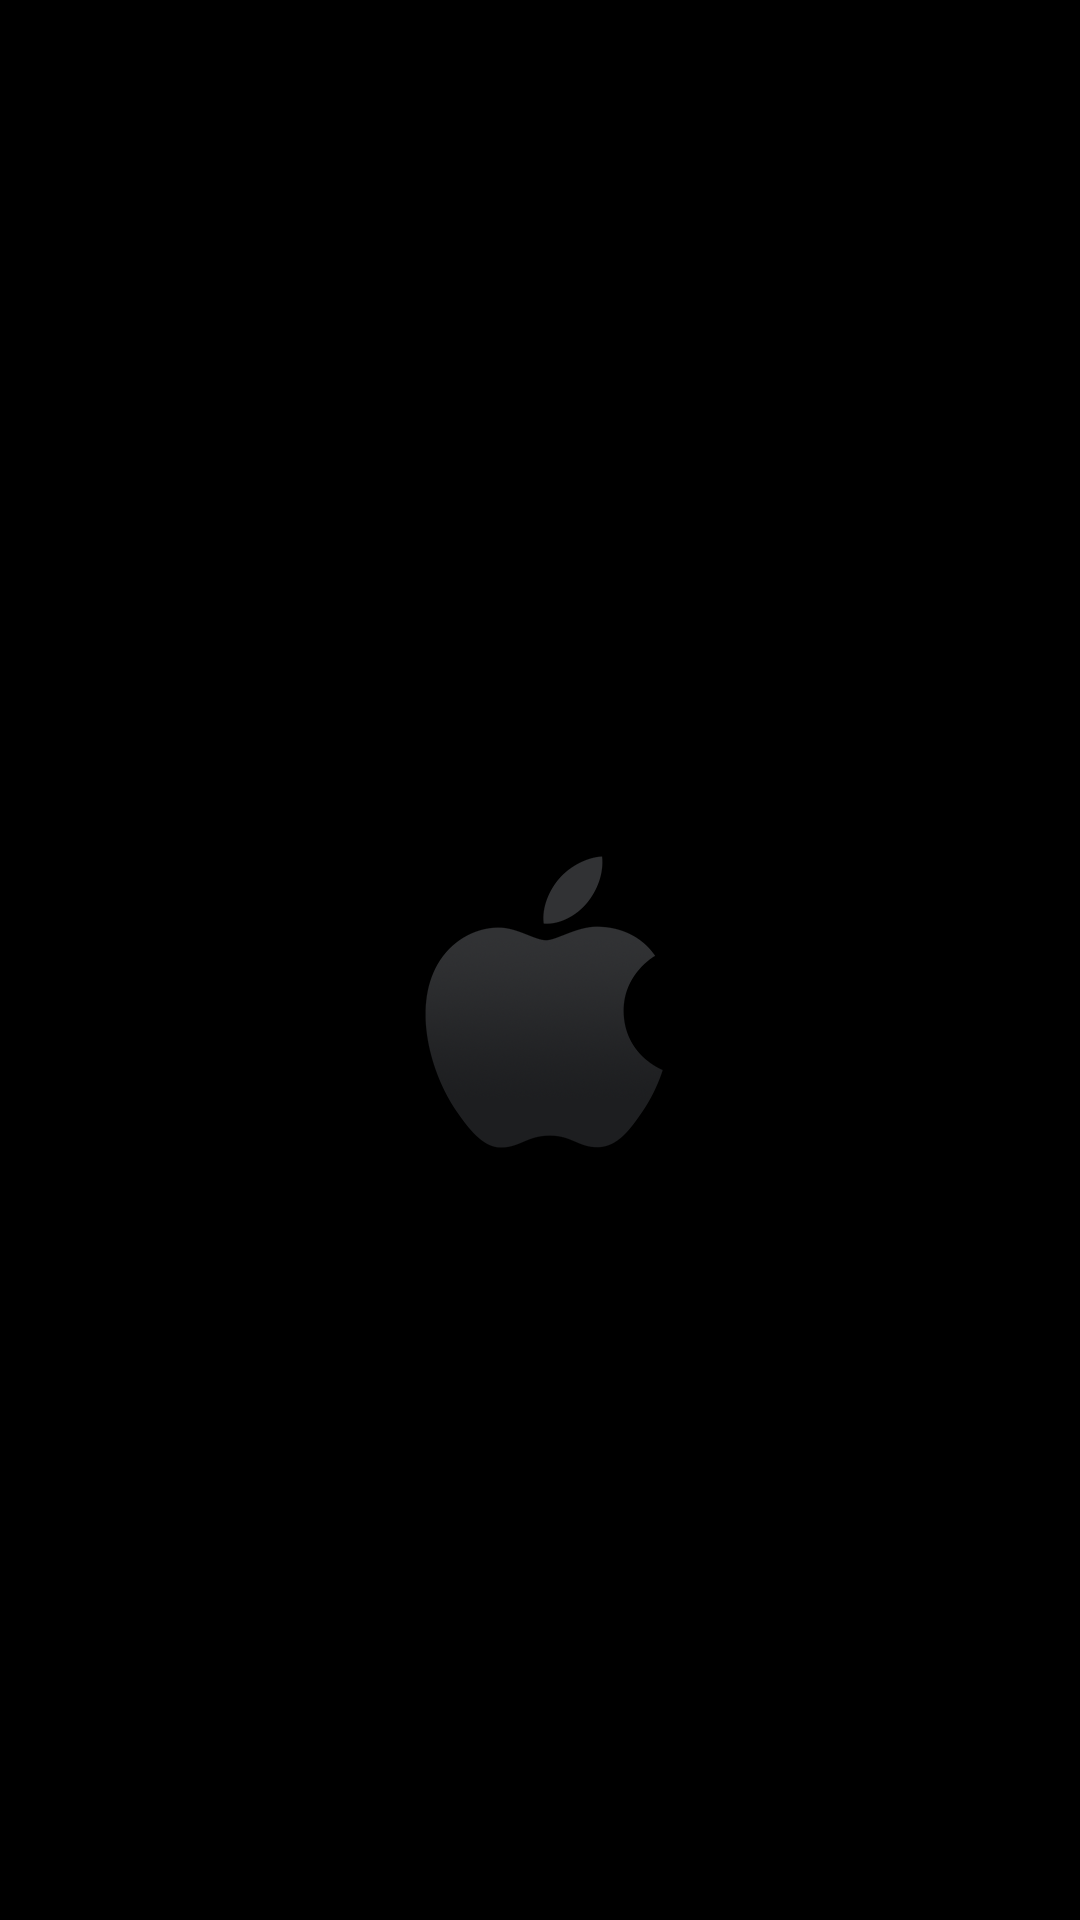 Pin By Asher Sirohi On Apple Logo Wallpapers Apple Logo Wallpaper Iphone Black Wallpaper Iphone Apple Wallpaper